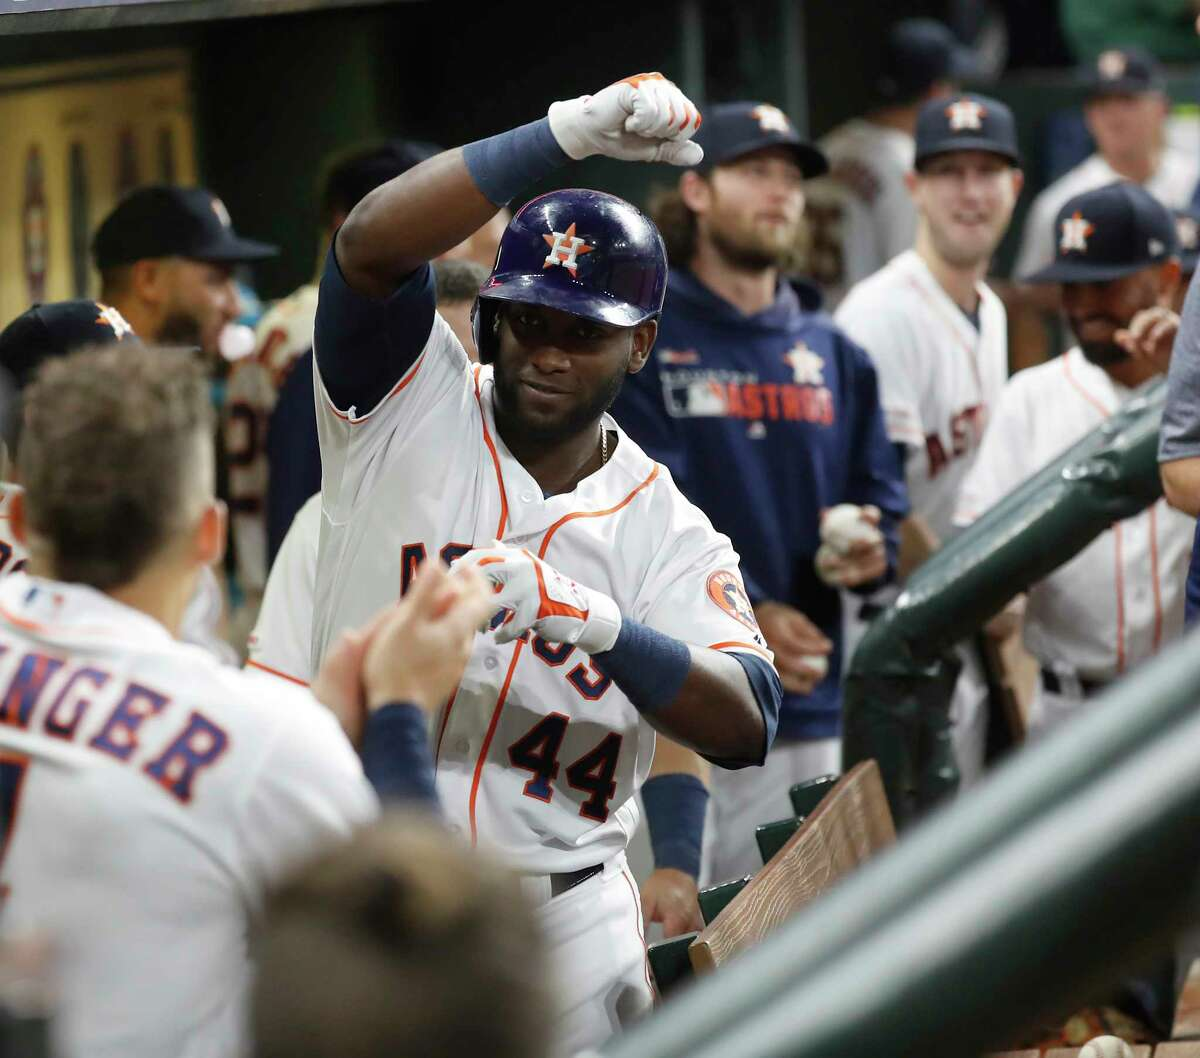 Houston Astros designated hitter Yordan Alvarez (44) celebrates his home run with George Springer during the sixth inning of an MLB baseball game at Minute Maid Park, Tuesday, Sept. 17, 2019, in Houston.